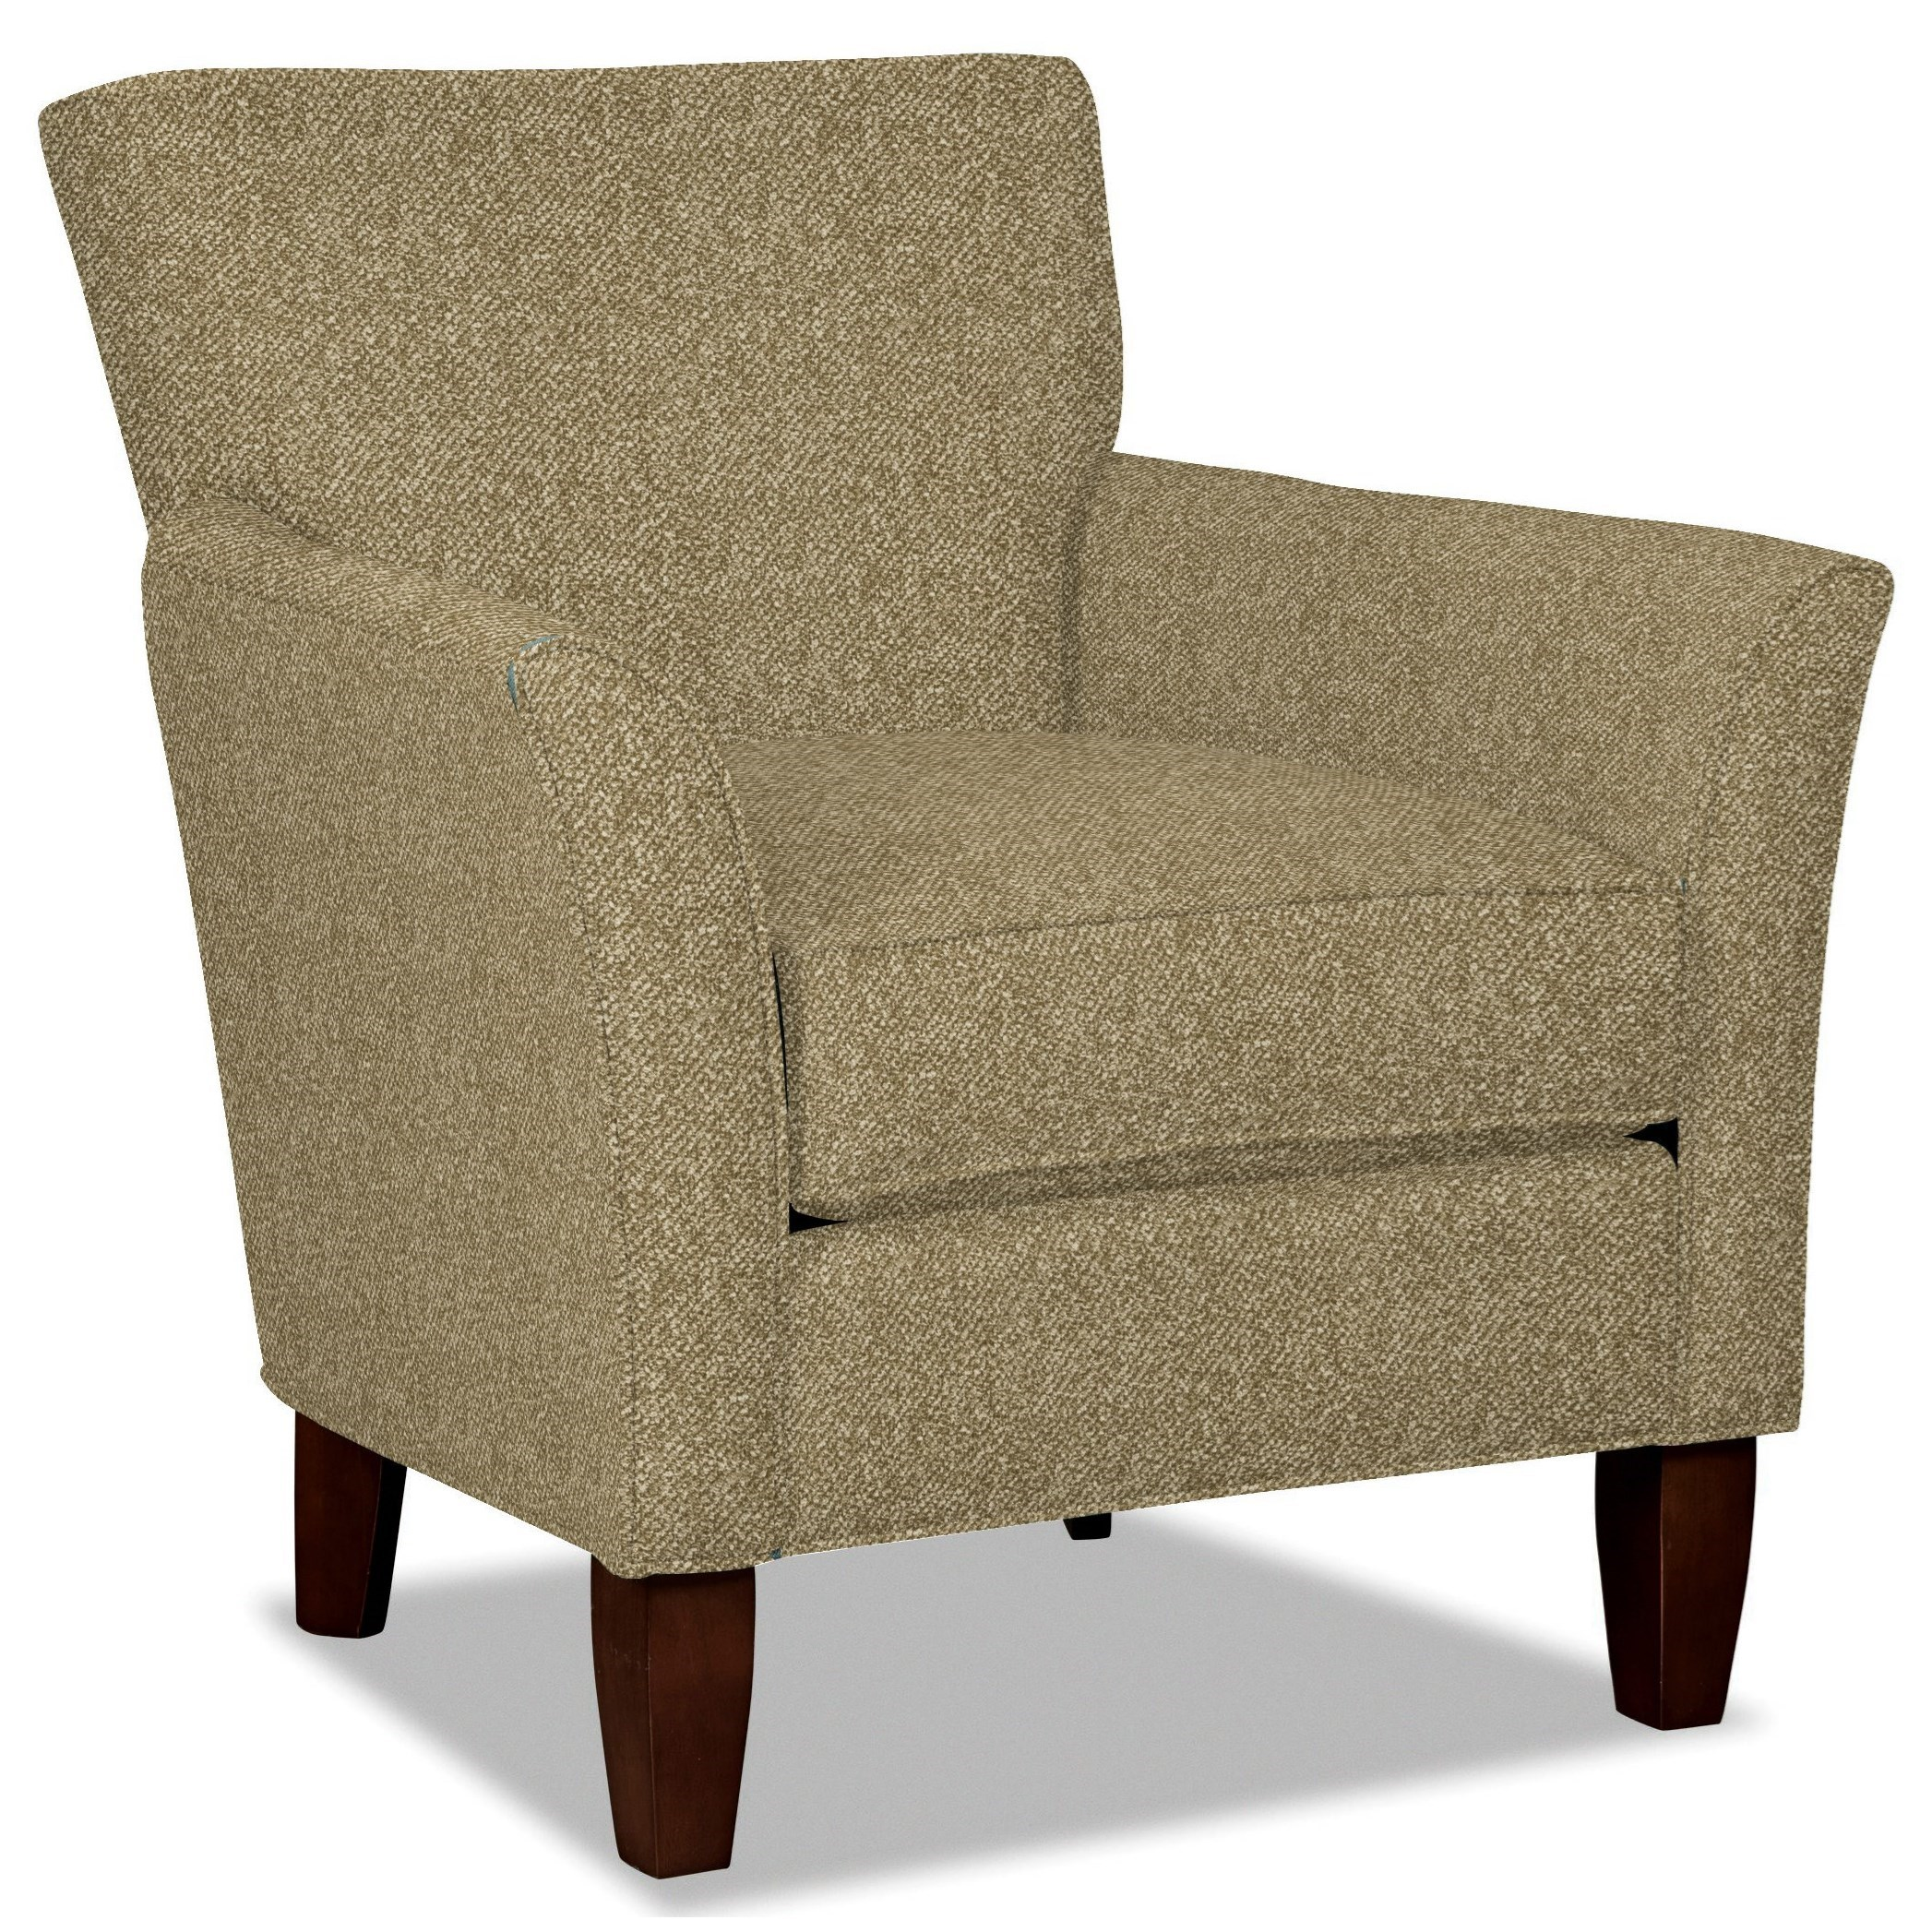 Craftmaster 060110 Accent Chair - Item Number: 060110-BALLARD-10